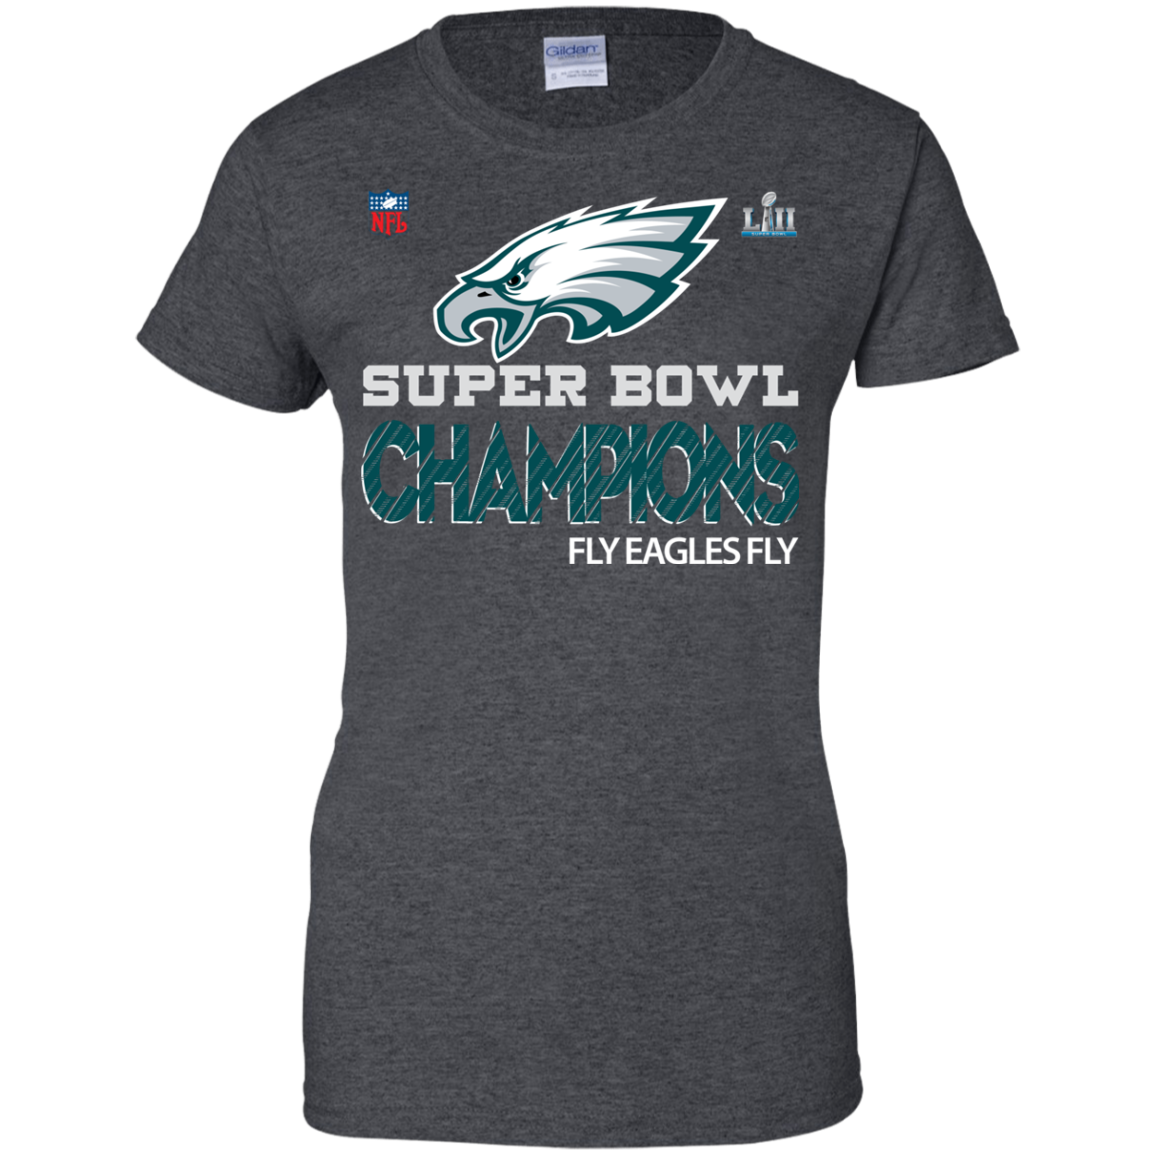 a258578b69f Super Bowl Champions Fly Eagle fly T-shirt - Mila Tees